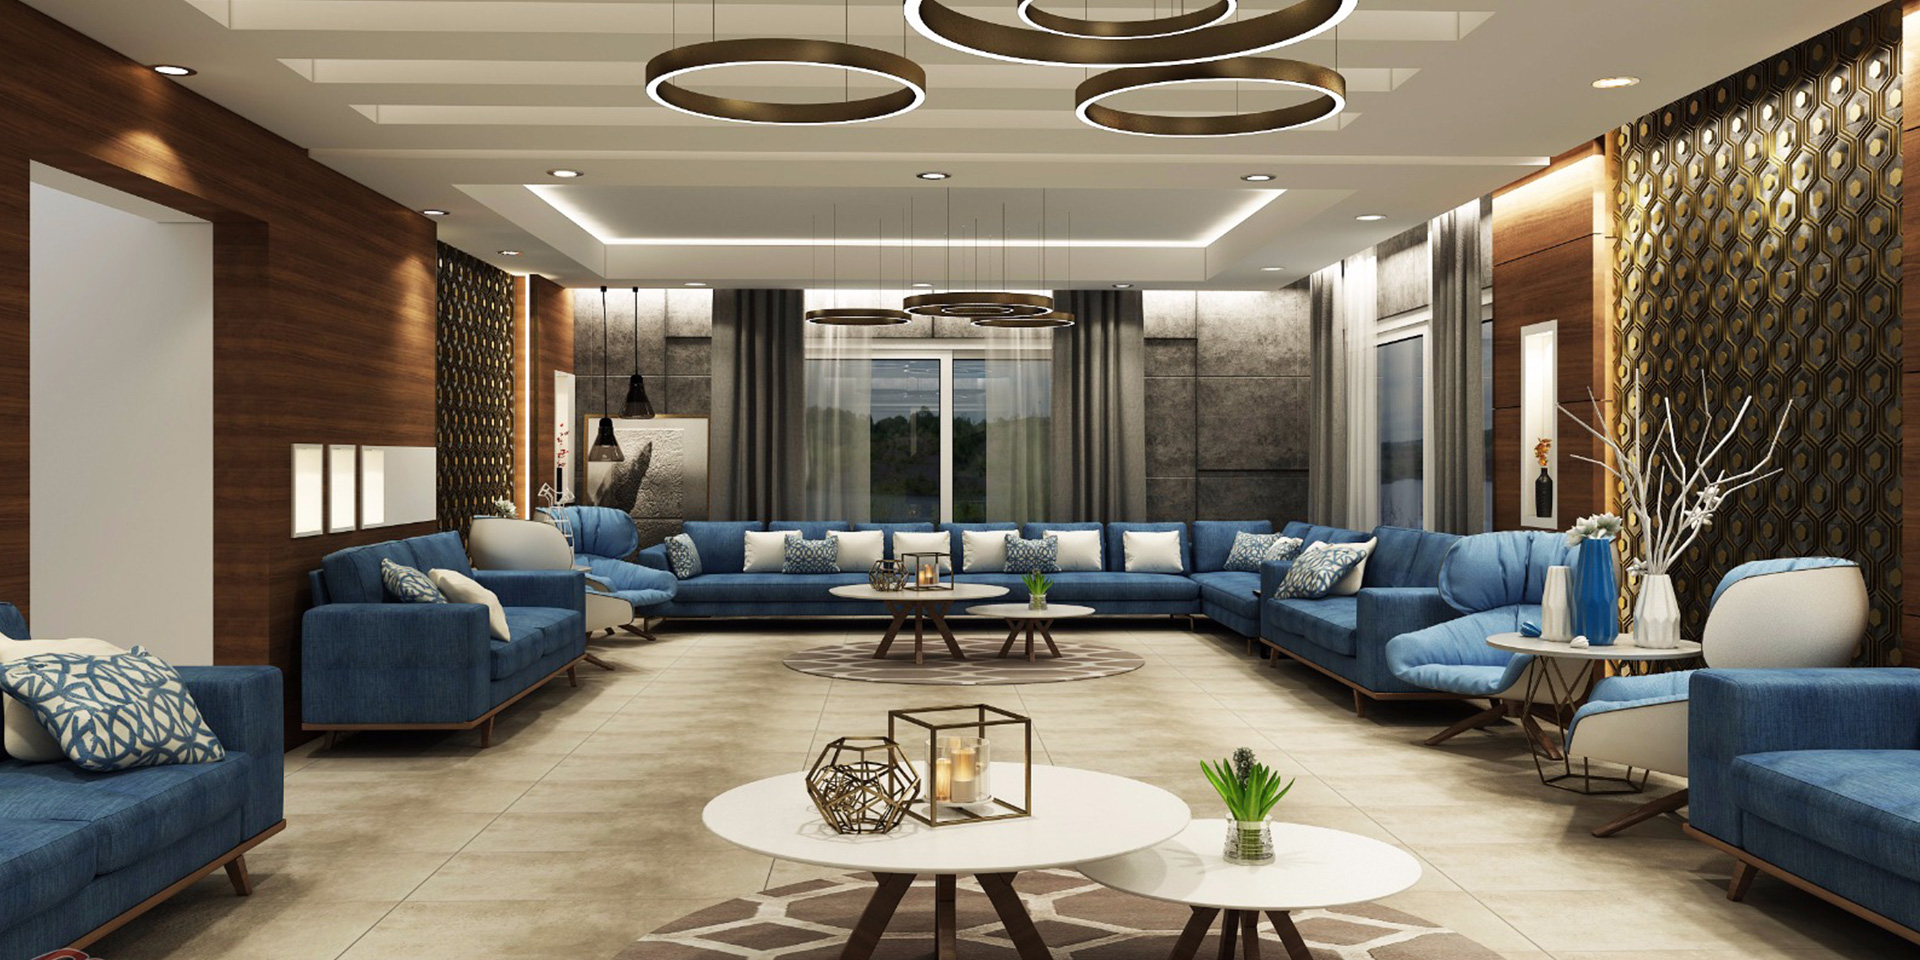 Top 10 interior design companies in dubai uae for Top 10 interior design companies